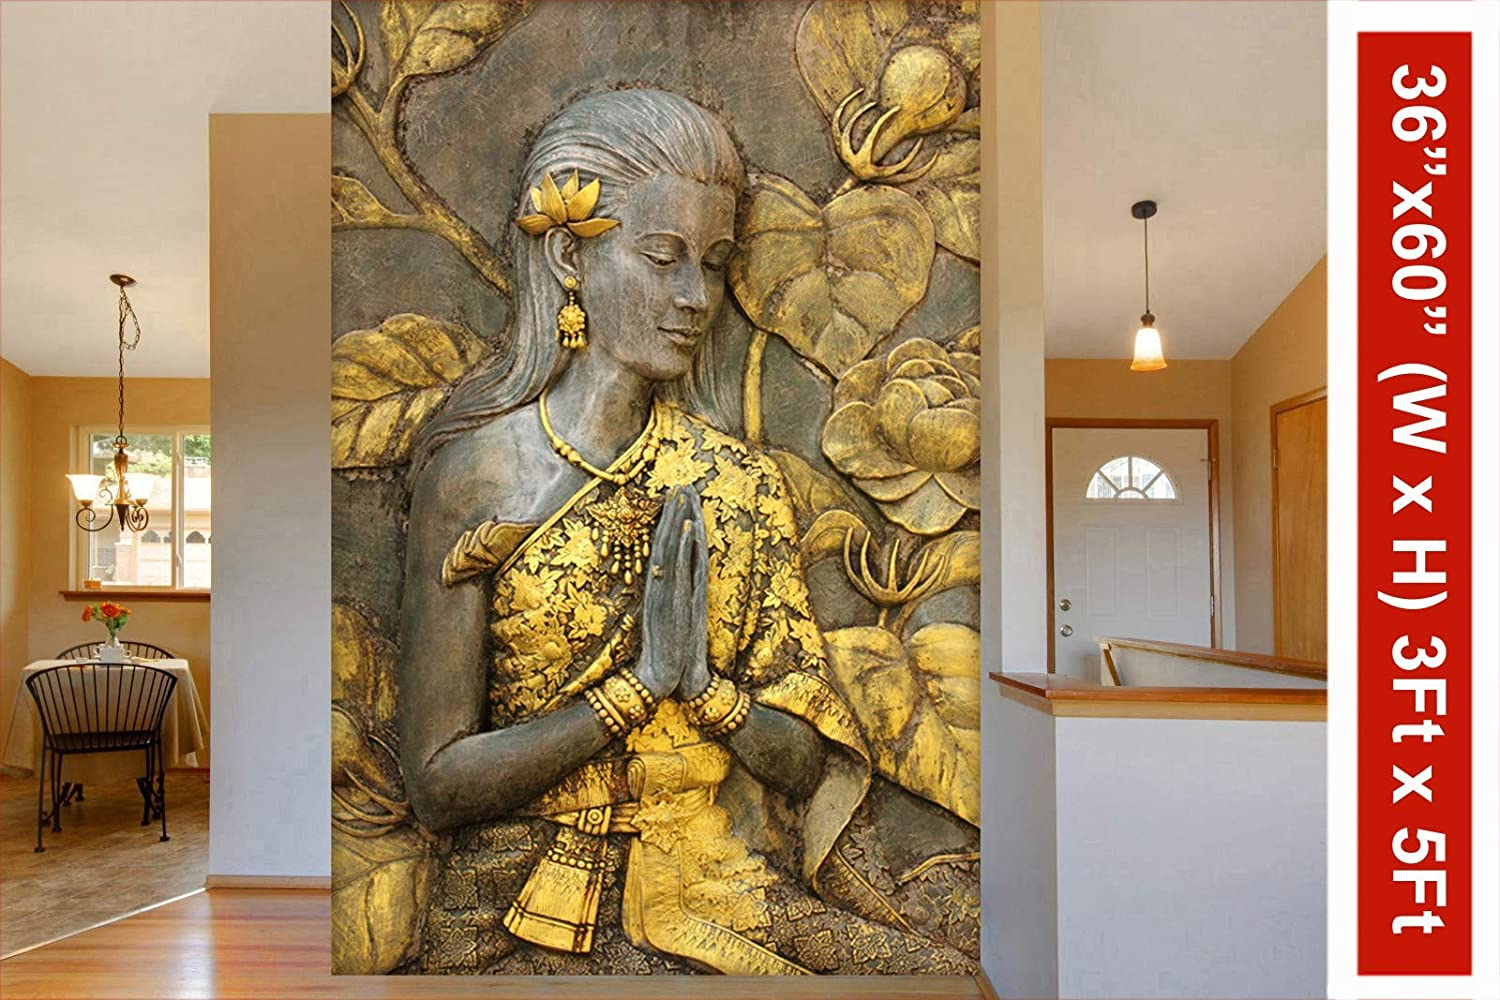 999store 3d Golden Flowers And Praying Hands Sitting Lady Mural Wallpaper Non Wooven 2x3 Feet Golden